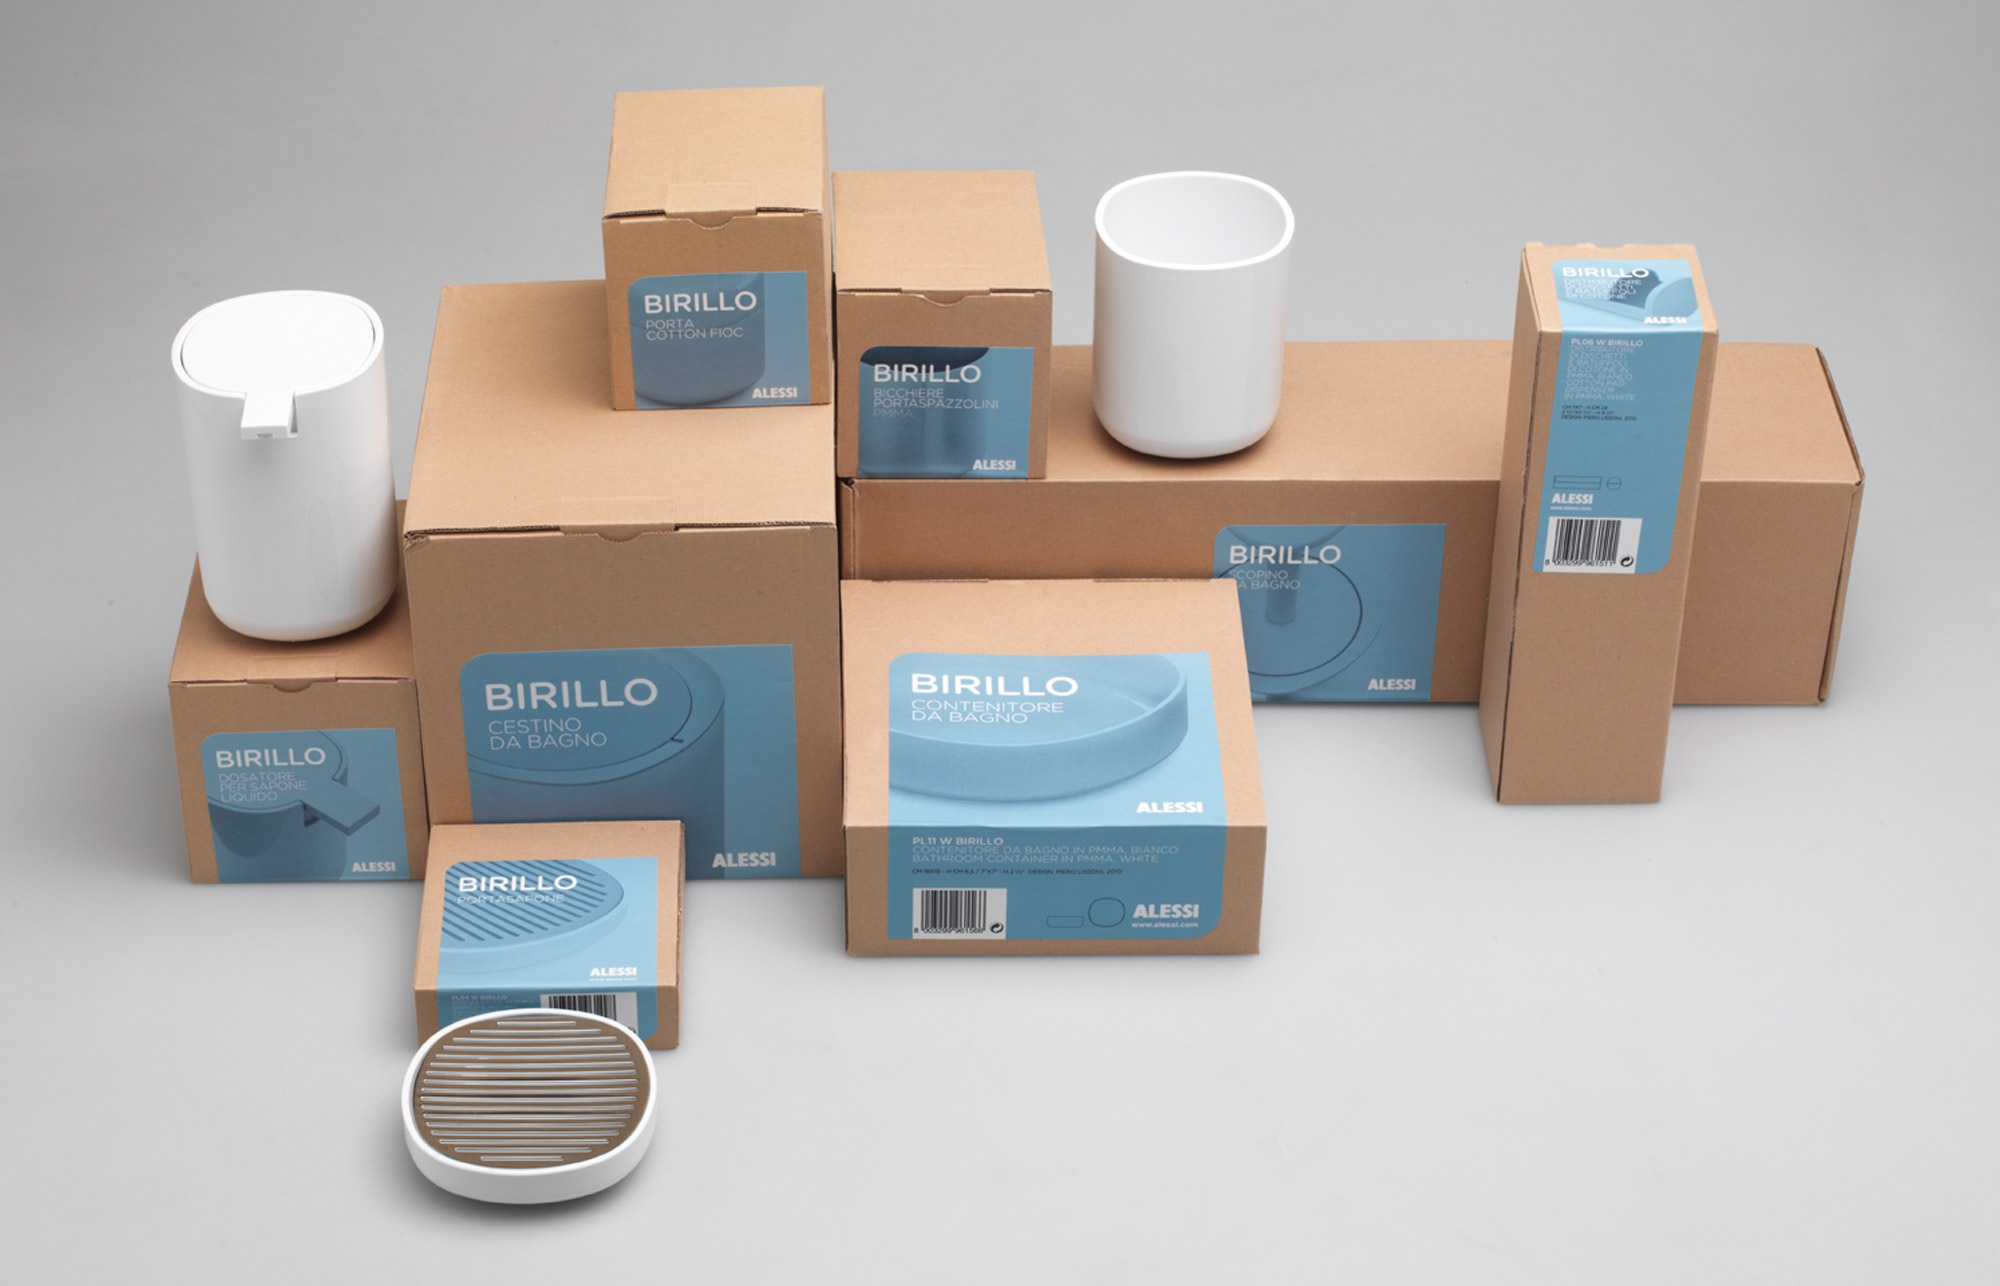 Bathroom Accessories Packaging lissoni associati - timeline - alessi - birillo packaging